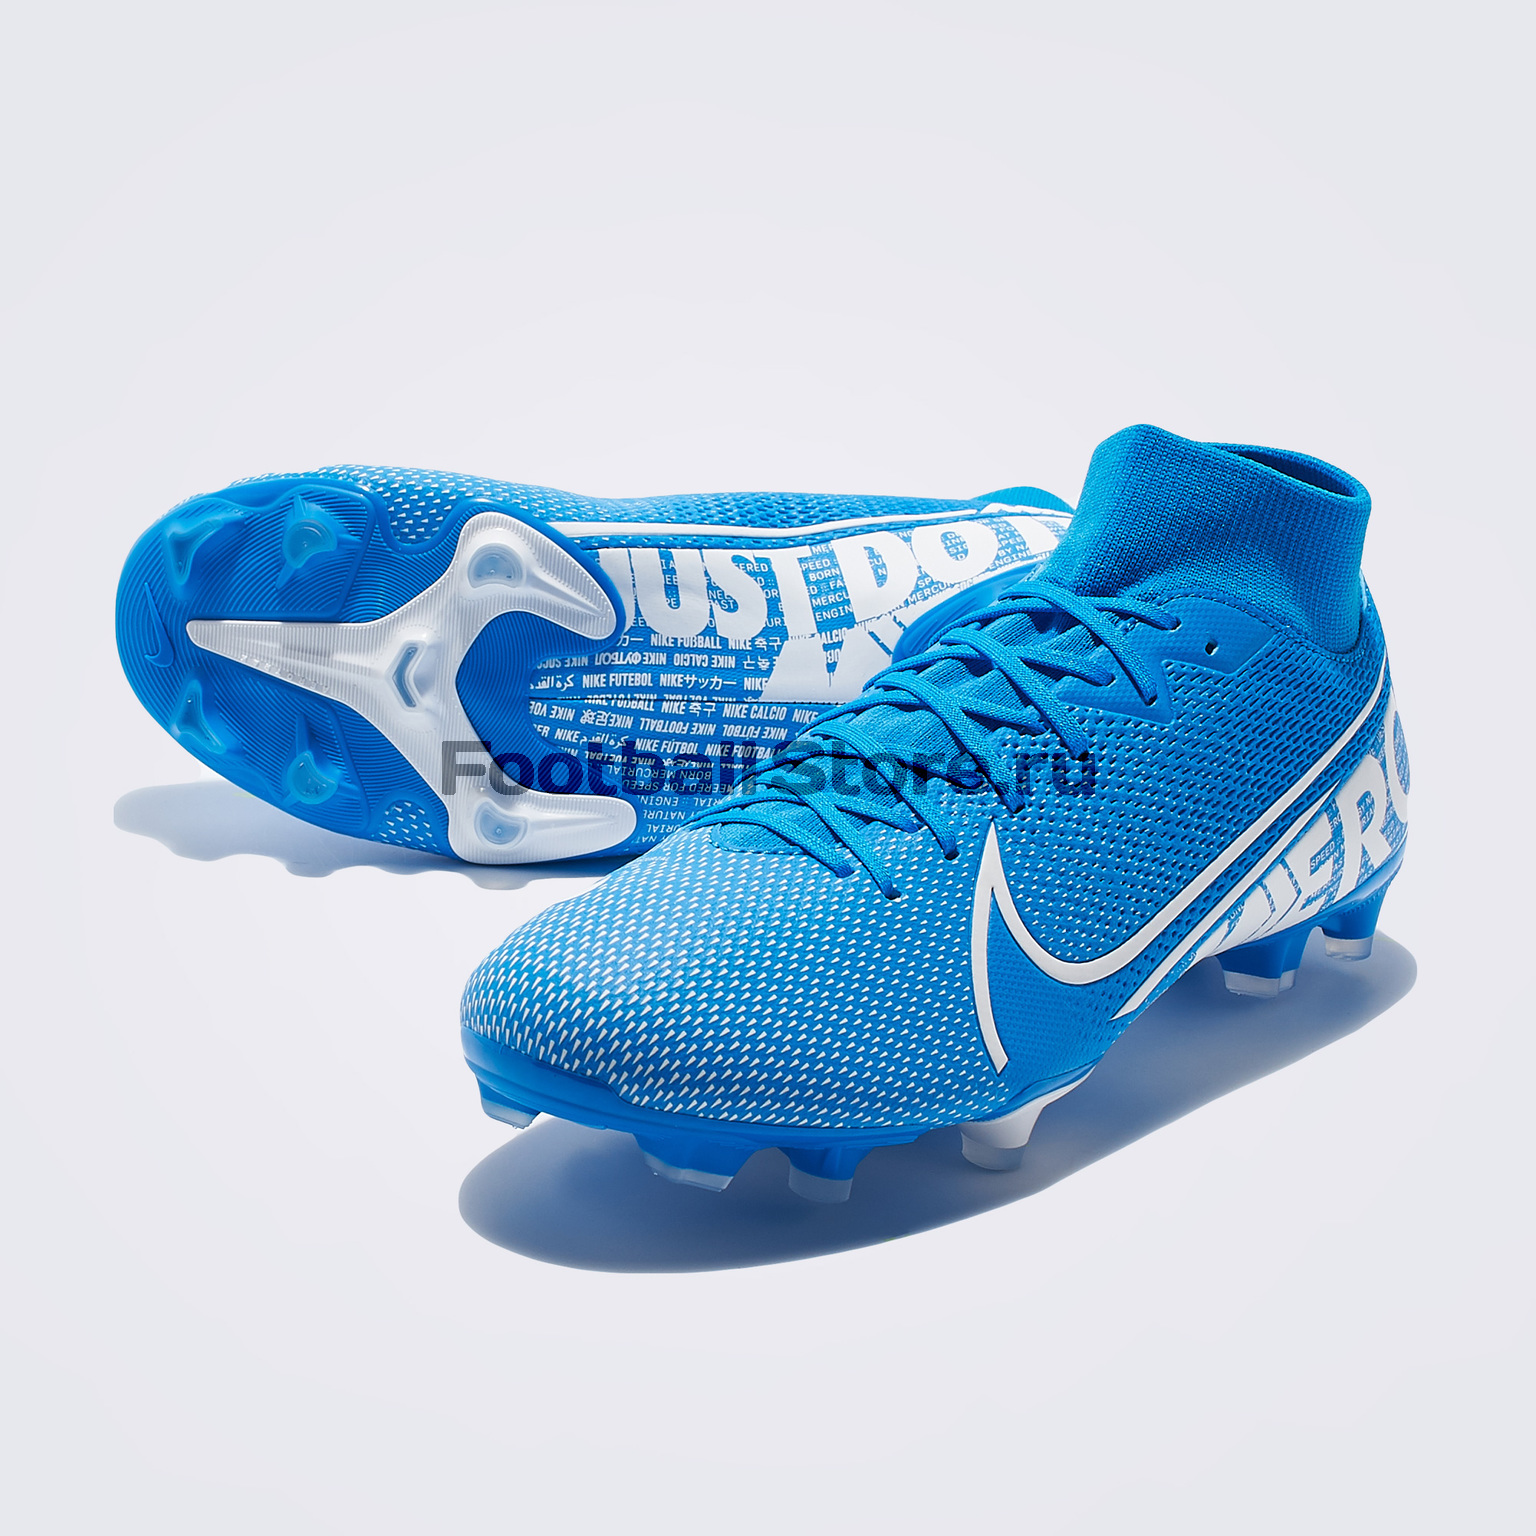 Бутсы Nike Superfly 7 Academy FG/MG AT7946-414 цена